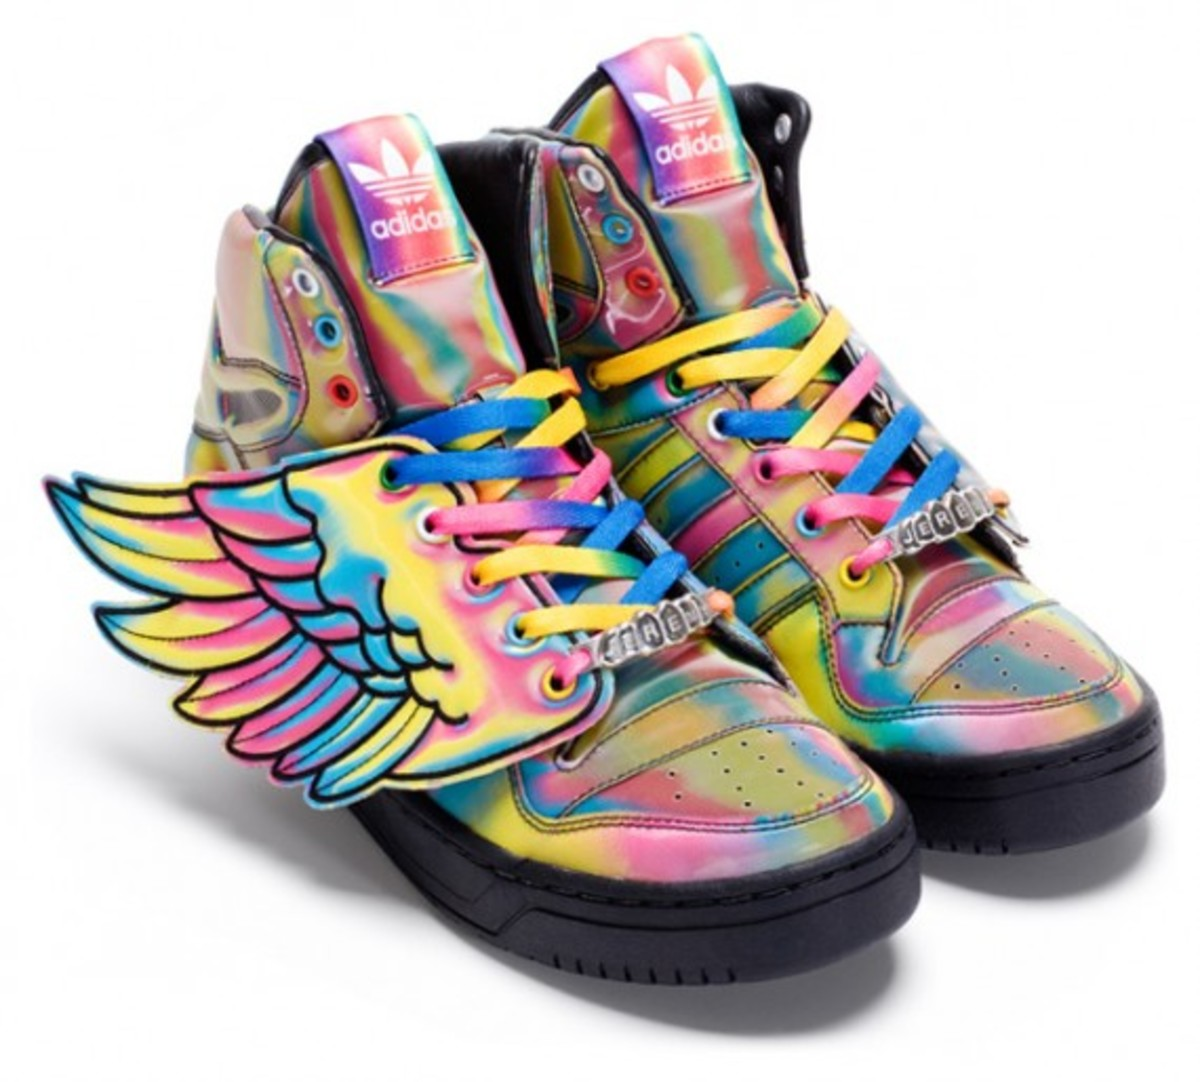 jeremy_scott_adidas_originals_obyo_ss10_footwear_2